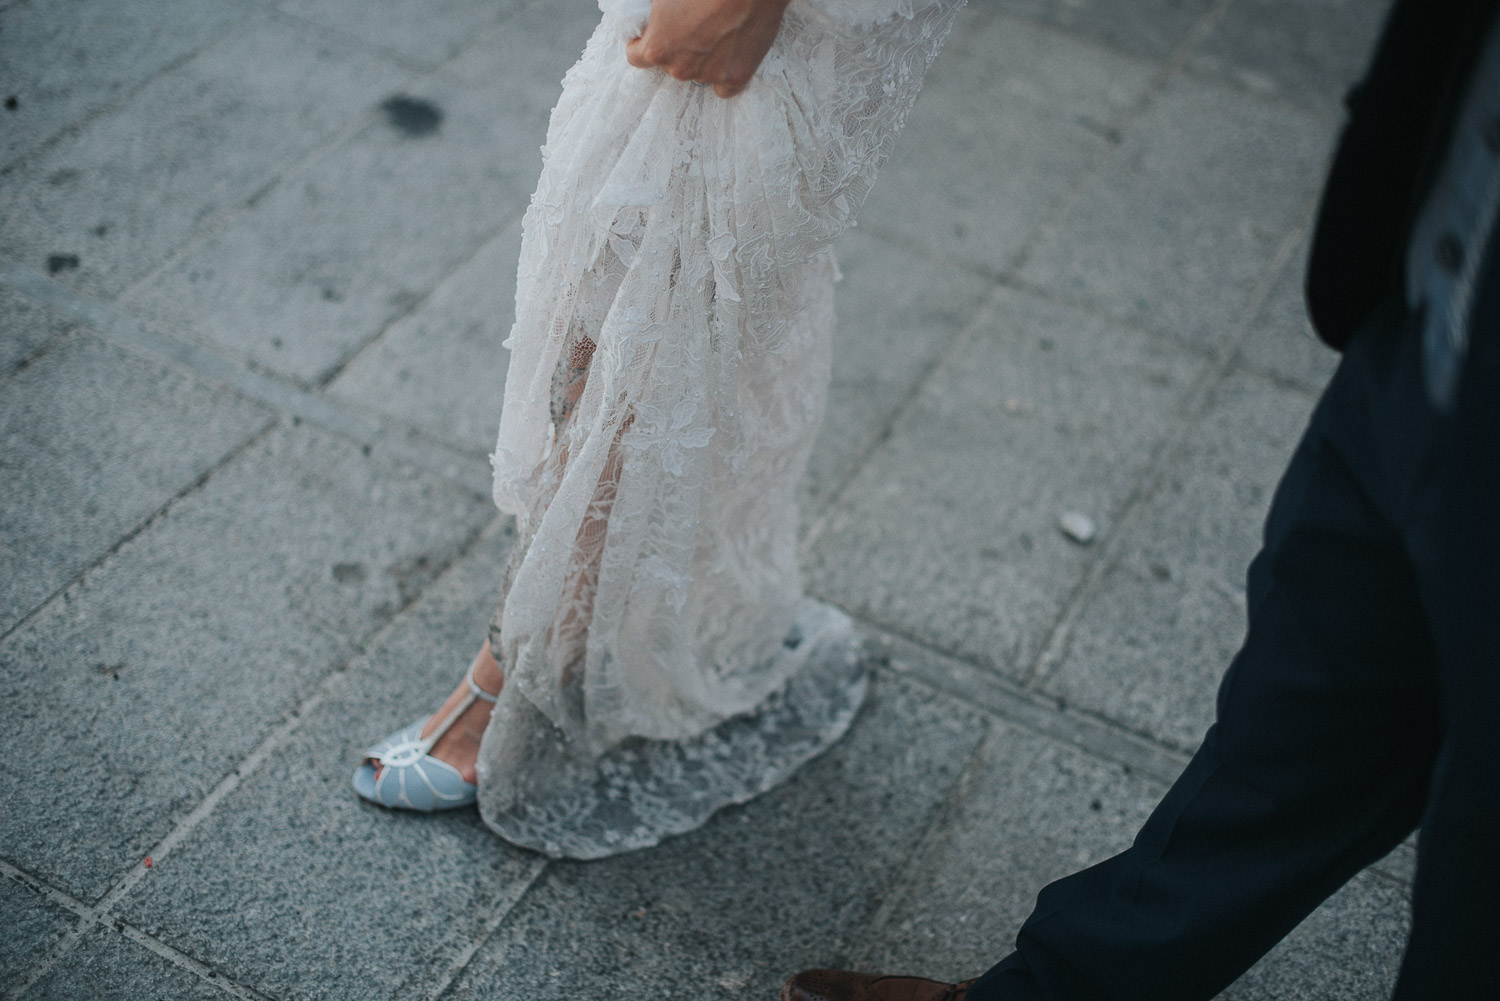 chateau_canet_carcassonne_wedding_katy_webb_photography_france_UK140